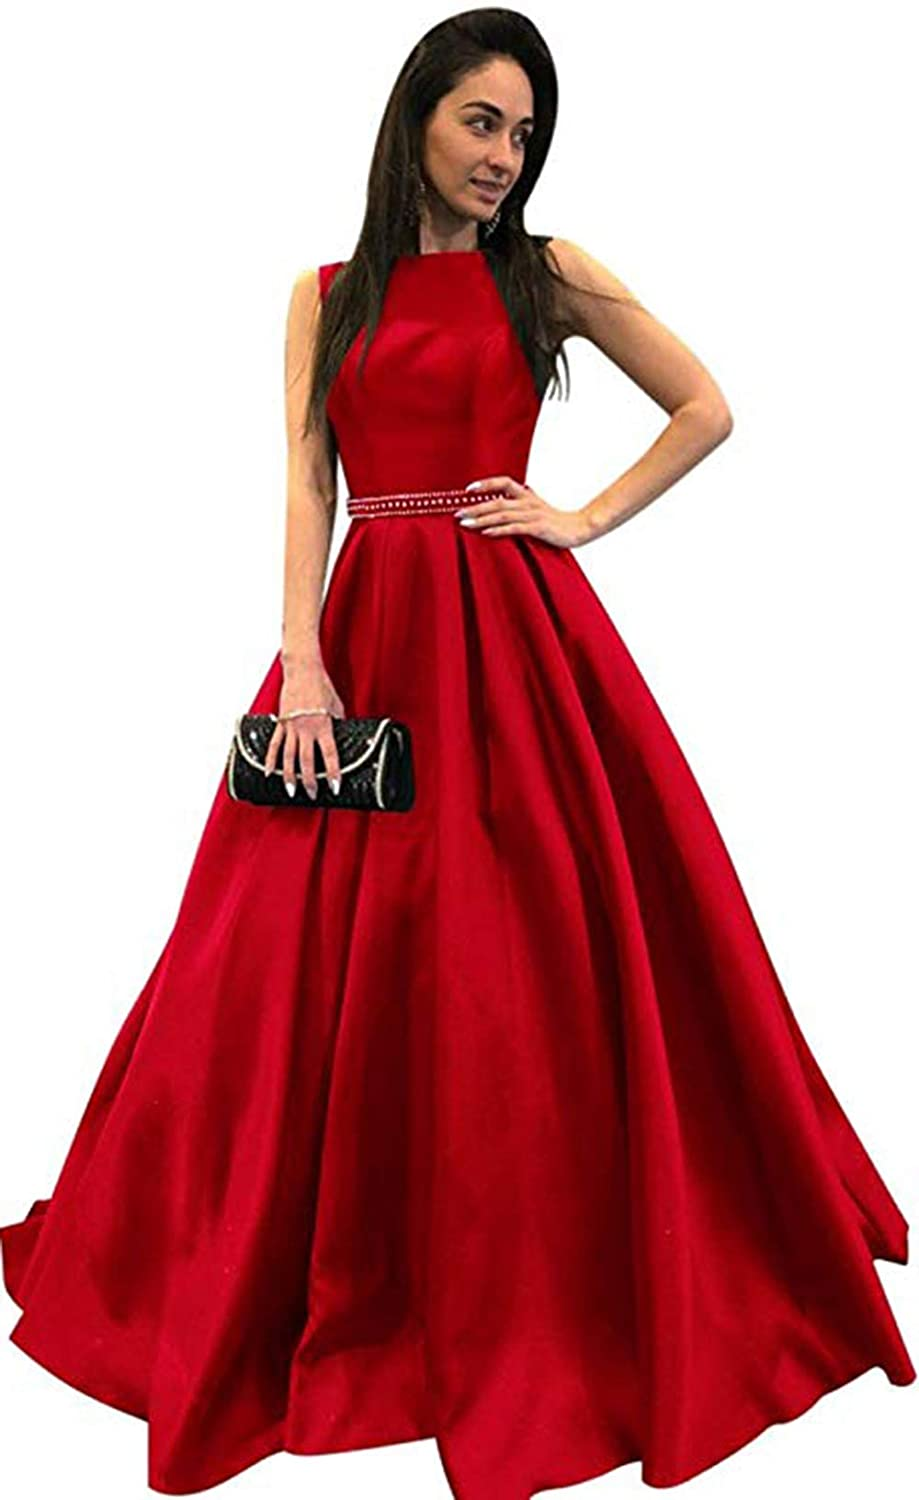 Red Ri Yun Womens Scoop Neck Long Prom Dresses 2019 Backless Beaded ALine Satin Formal Evening Ball Gowns with Pockets